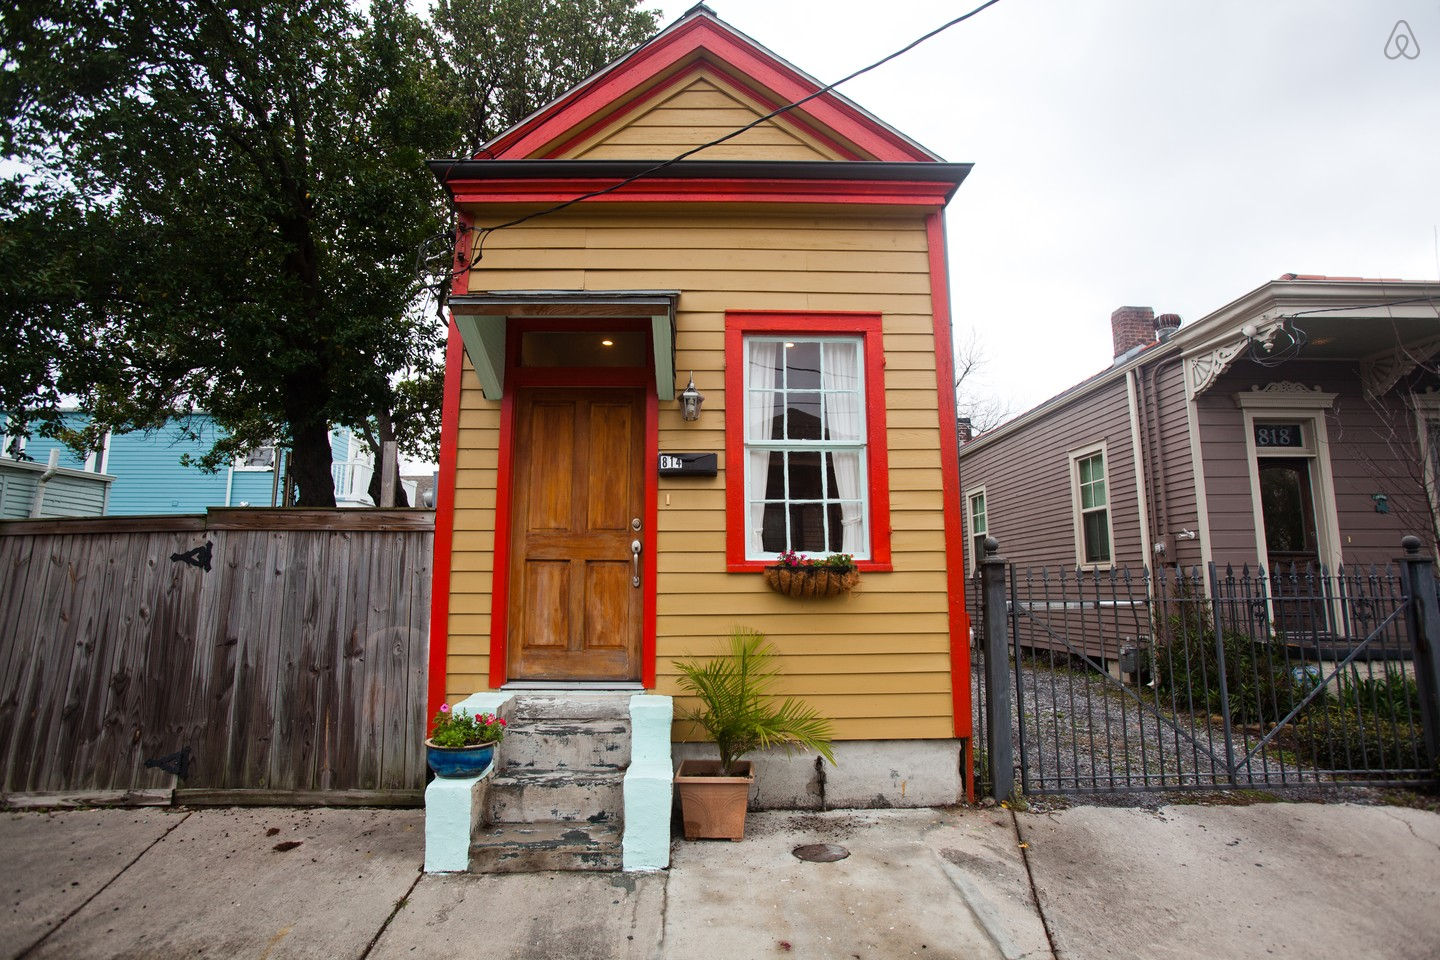 Some Historians Say That The Name U201cshotgun Houseu201d Refers To The Fact That  If All The Doors Are Open, A Shotgun Blast Could Pass Straight Through The  House.